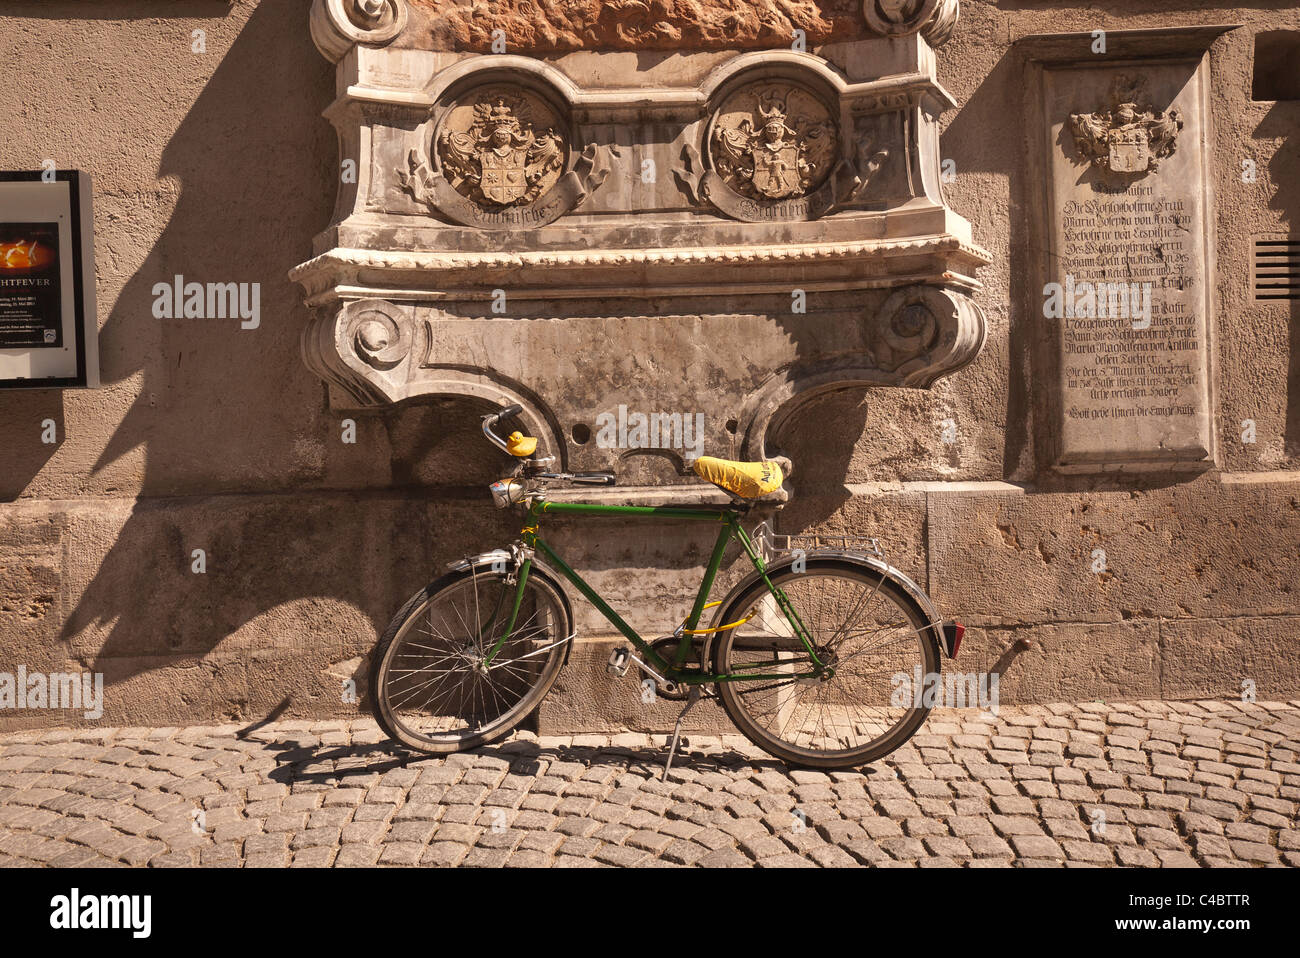 A green bicycle with a yellow seat and rubber ducky stands in front ...